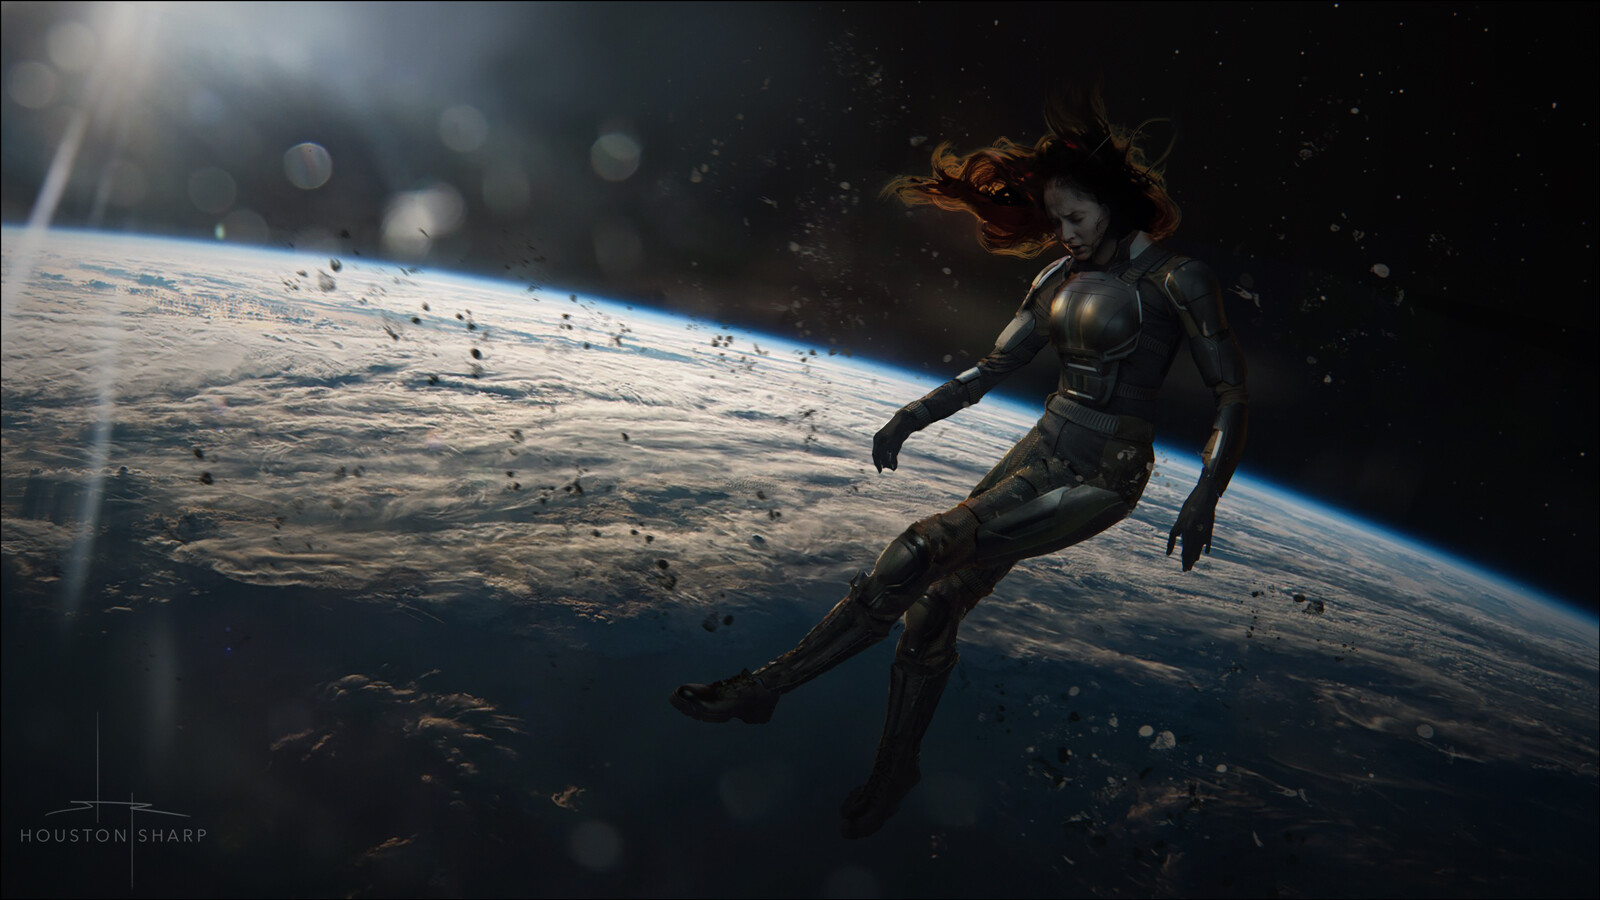 Jean Grey floating unconsciously through space